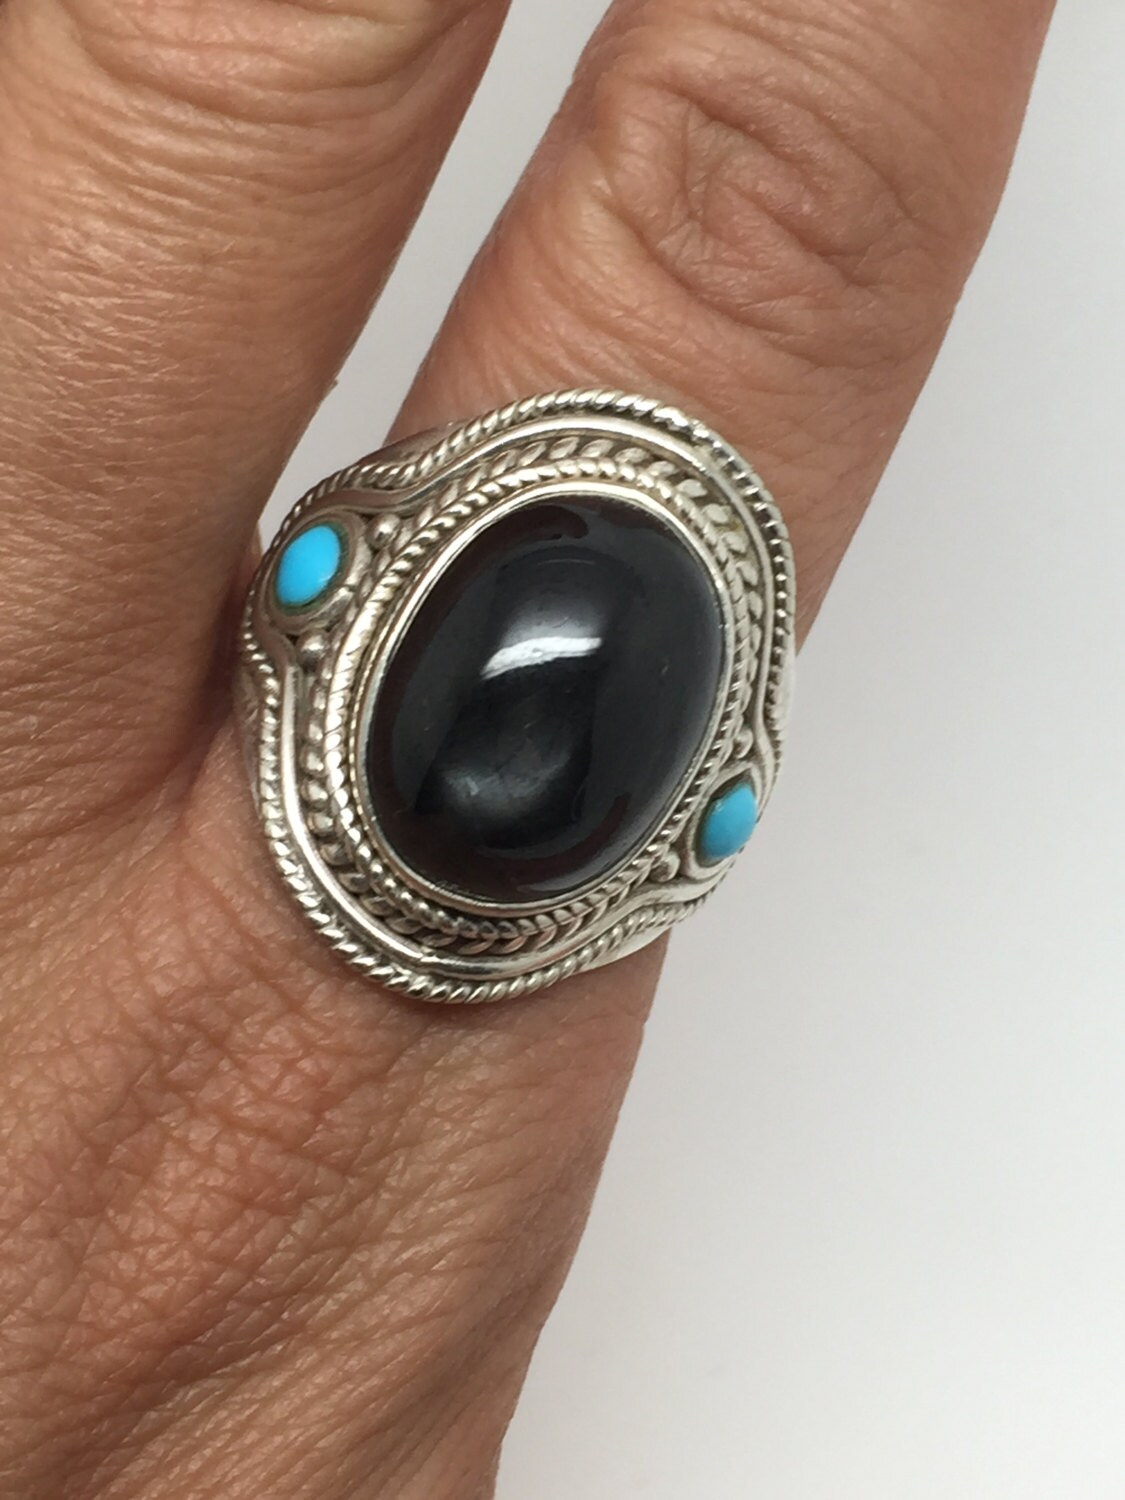 silver ring with black star stone and two small turquoise on